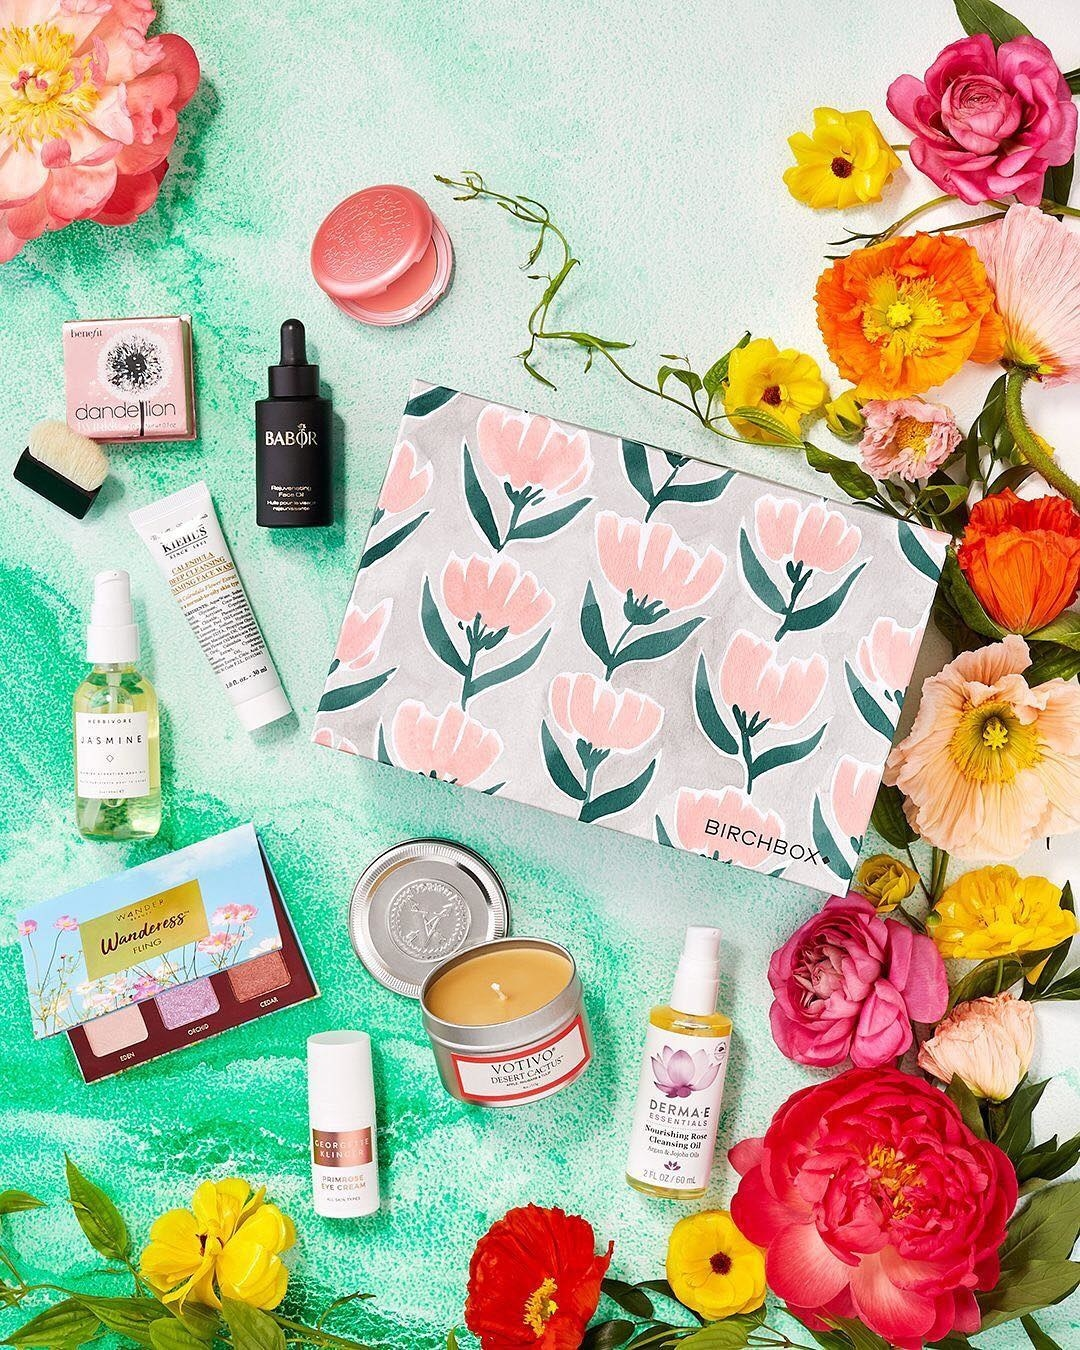 different beauty products styled on table with flowers